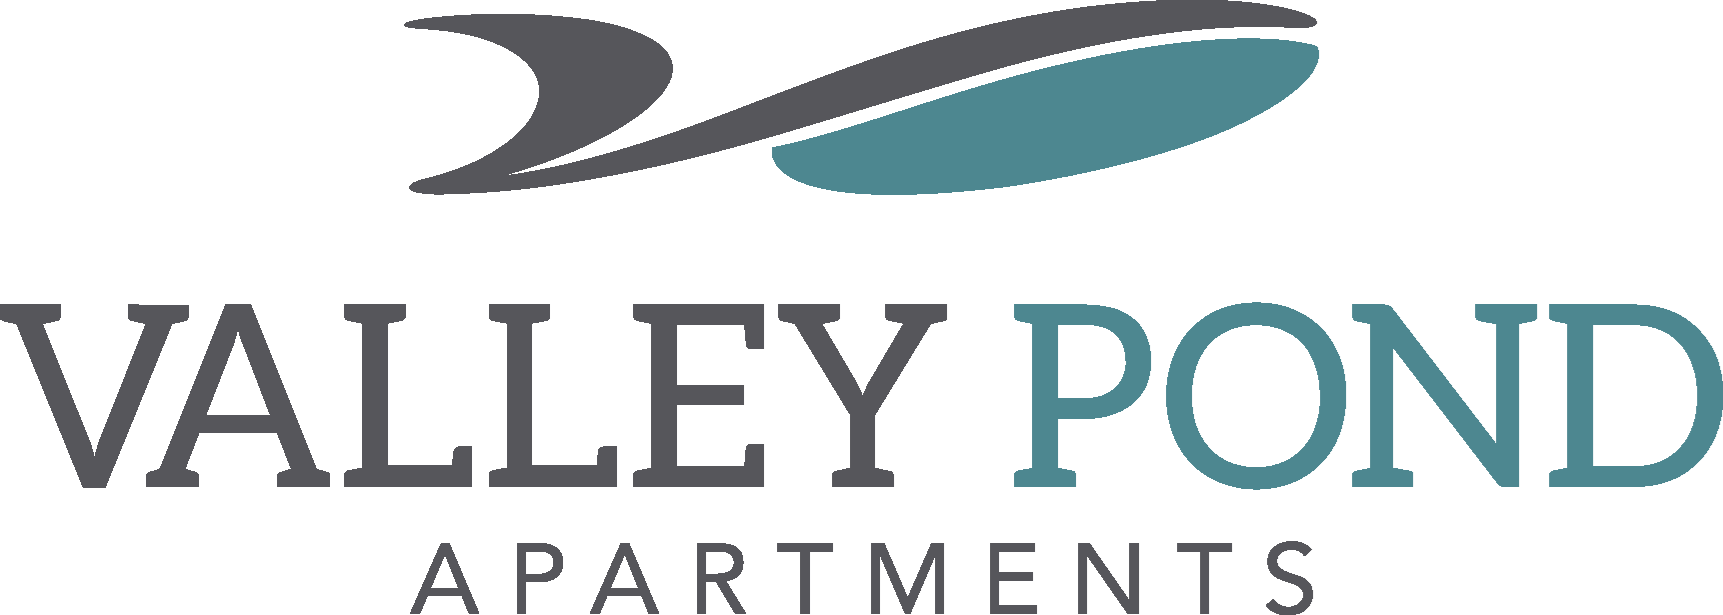 Apple Valley Property Logo 83